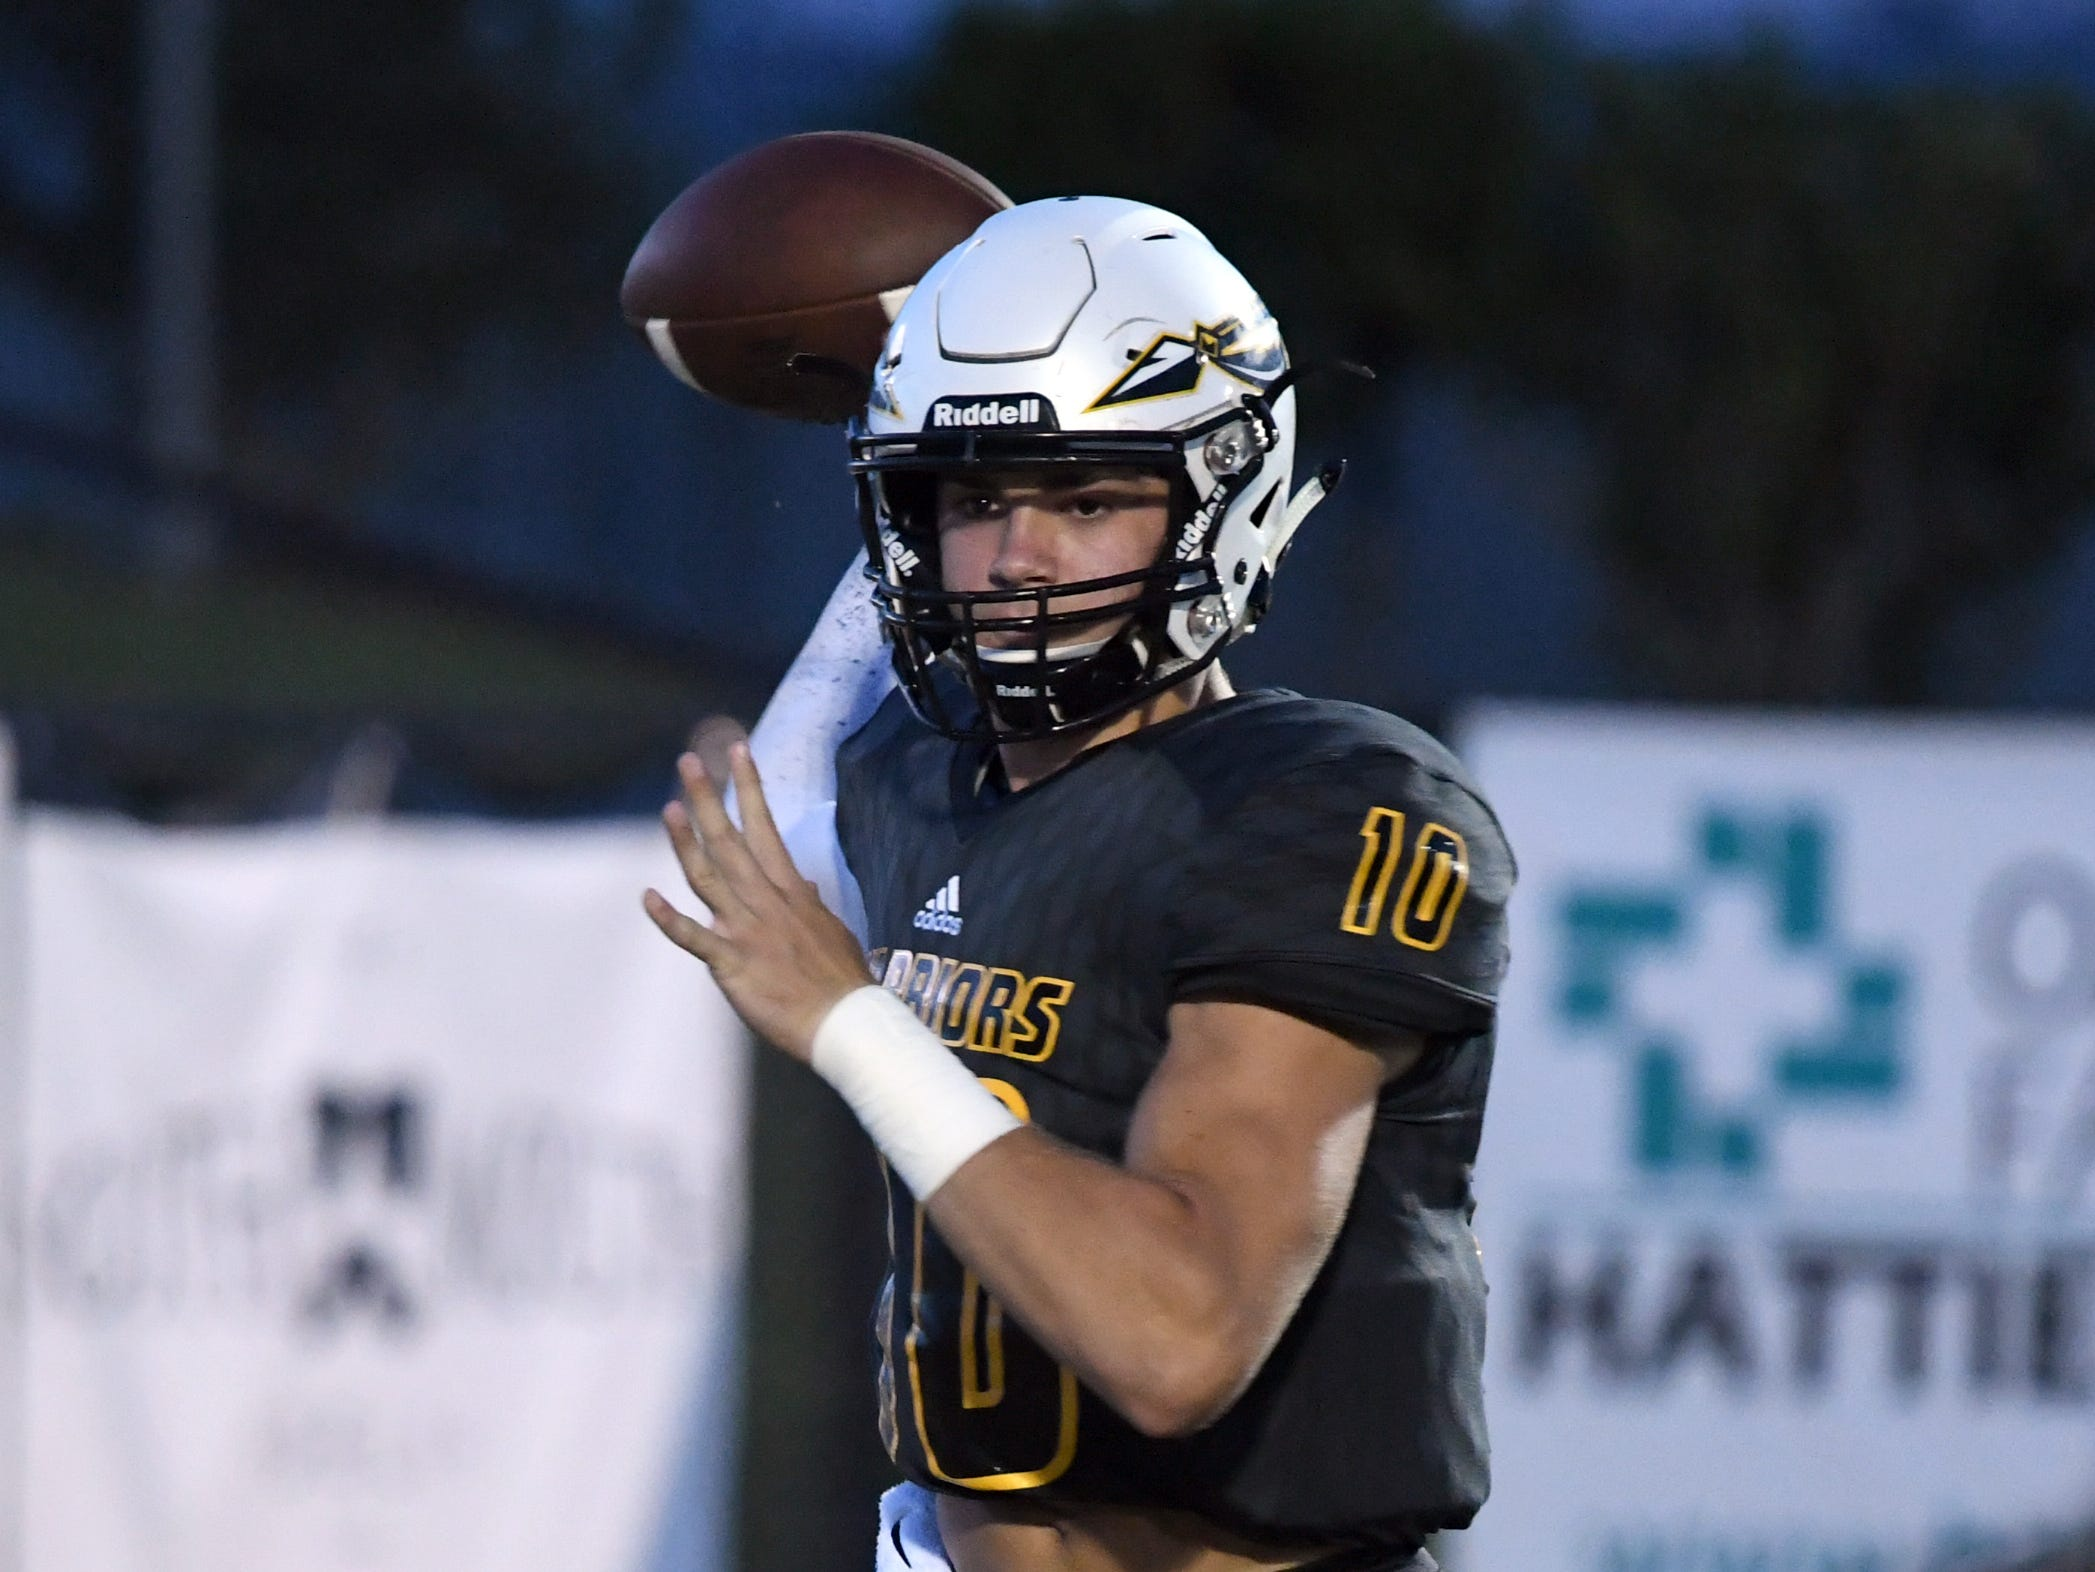 Oak Grove quarterback John Rhys Plumlee throws the ball in a game against George County in Hattiesburg on Friday, September 21, 2018.